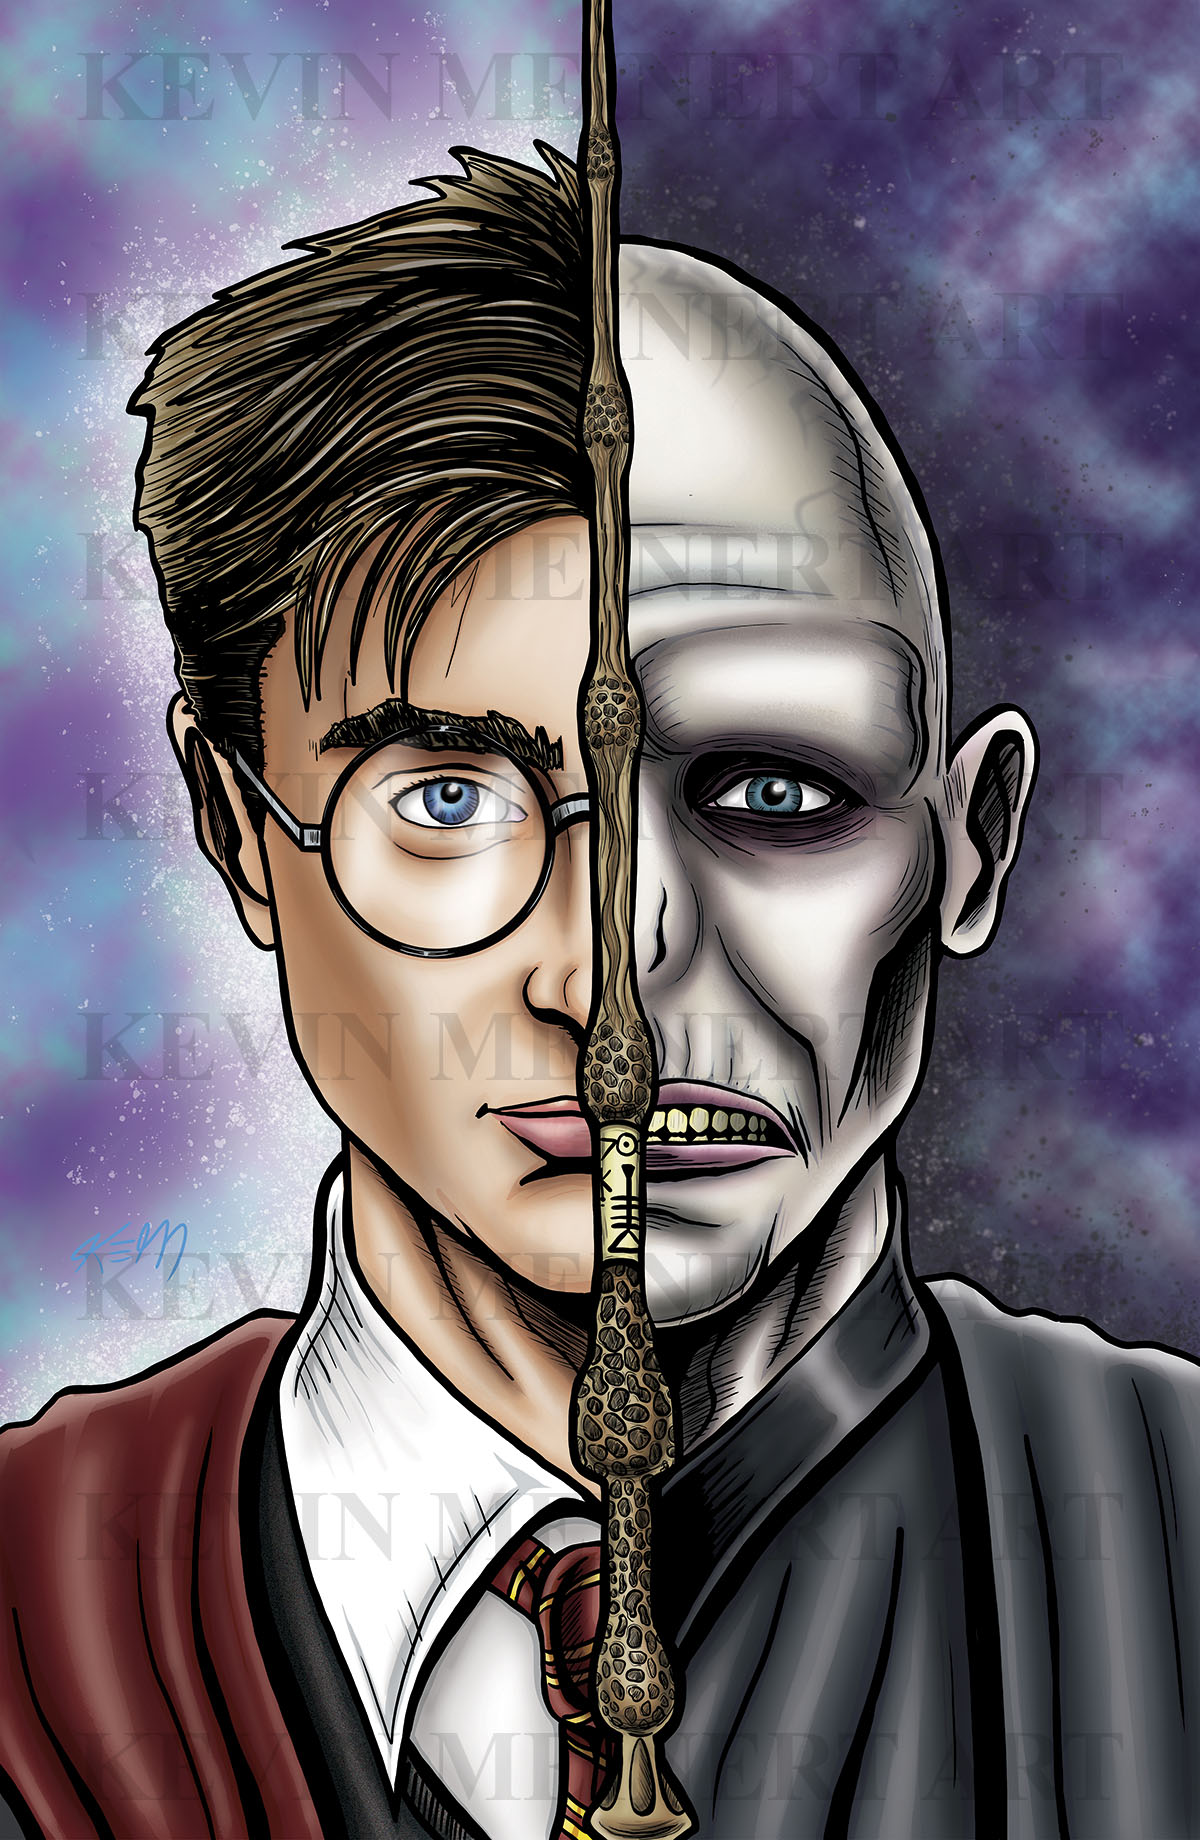 harry potter vs valdermort